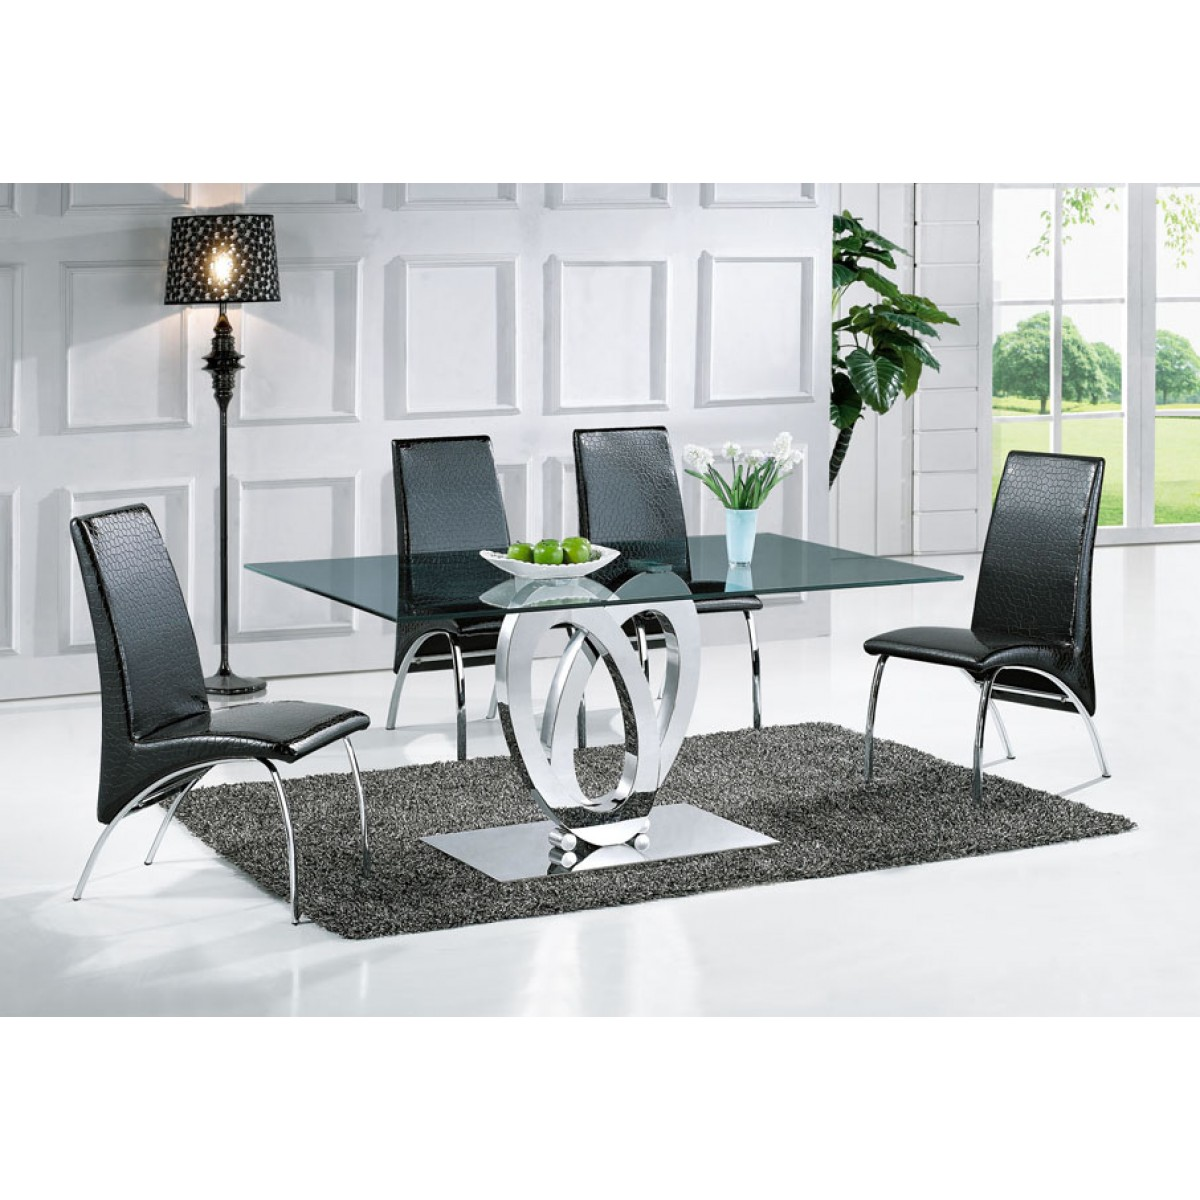 Table manger design ellipse taille au choix tables de salle manger tables for Solde table salle a manger